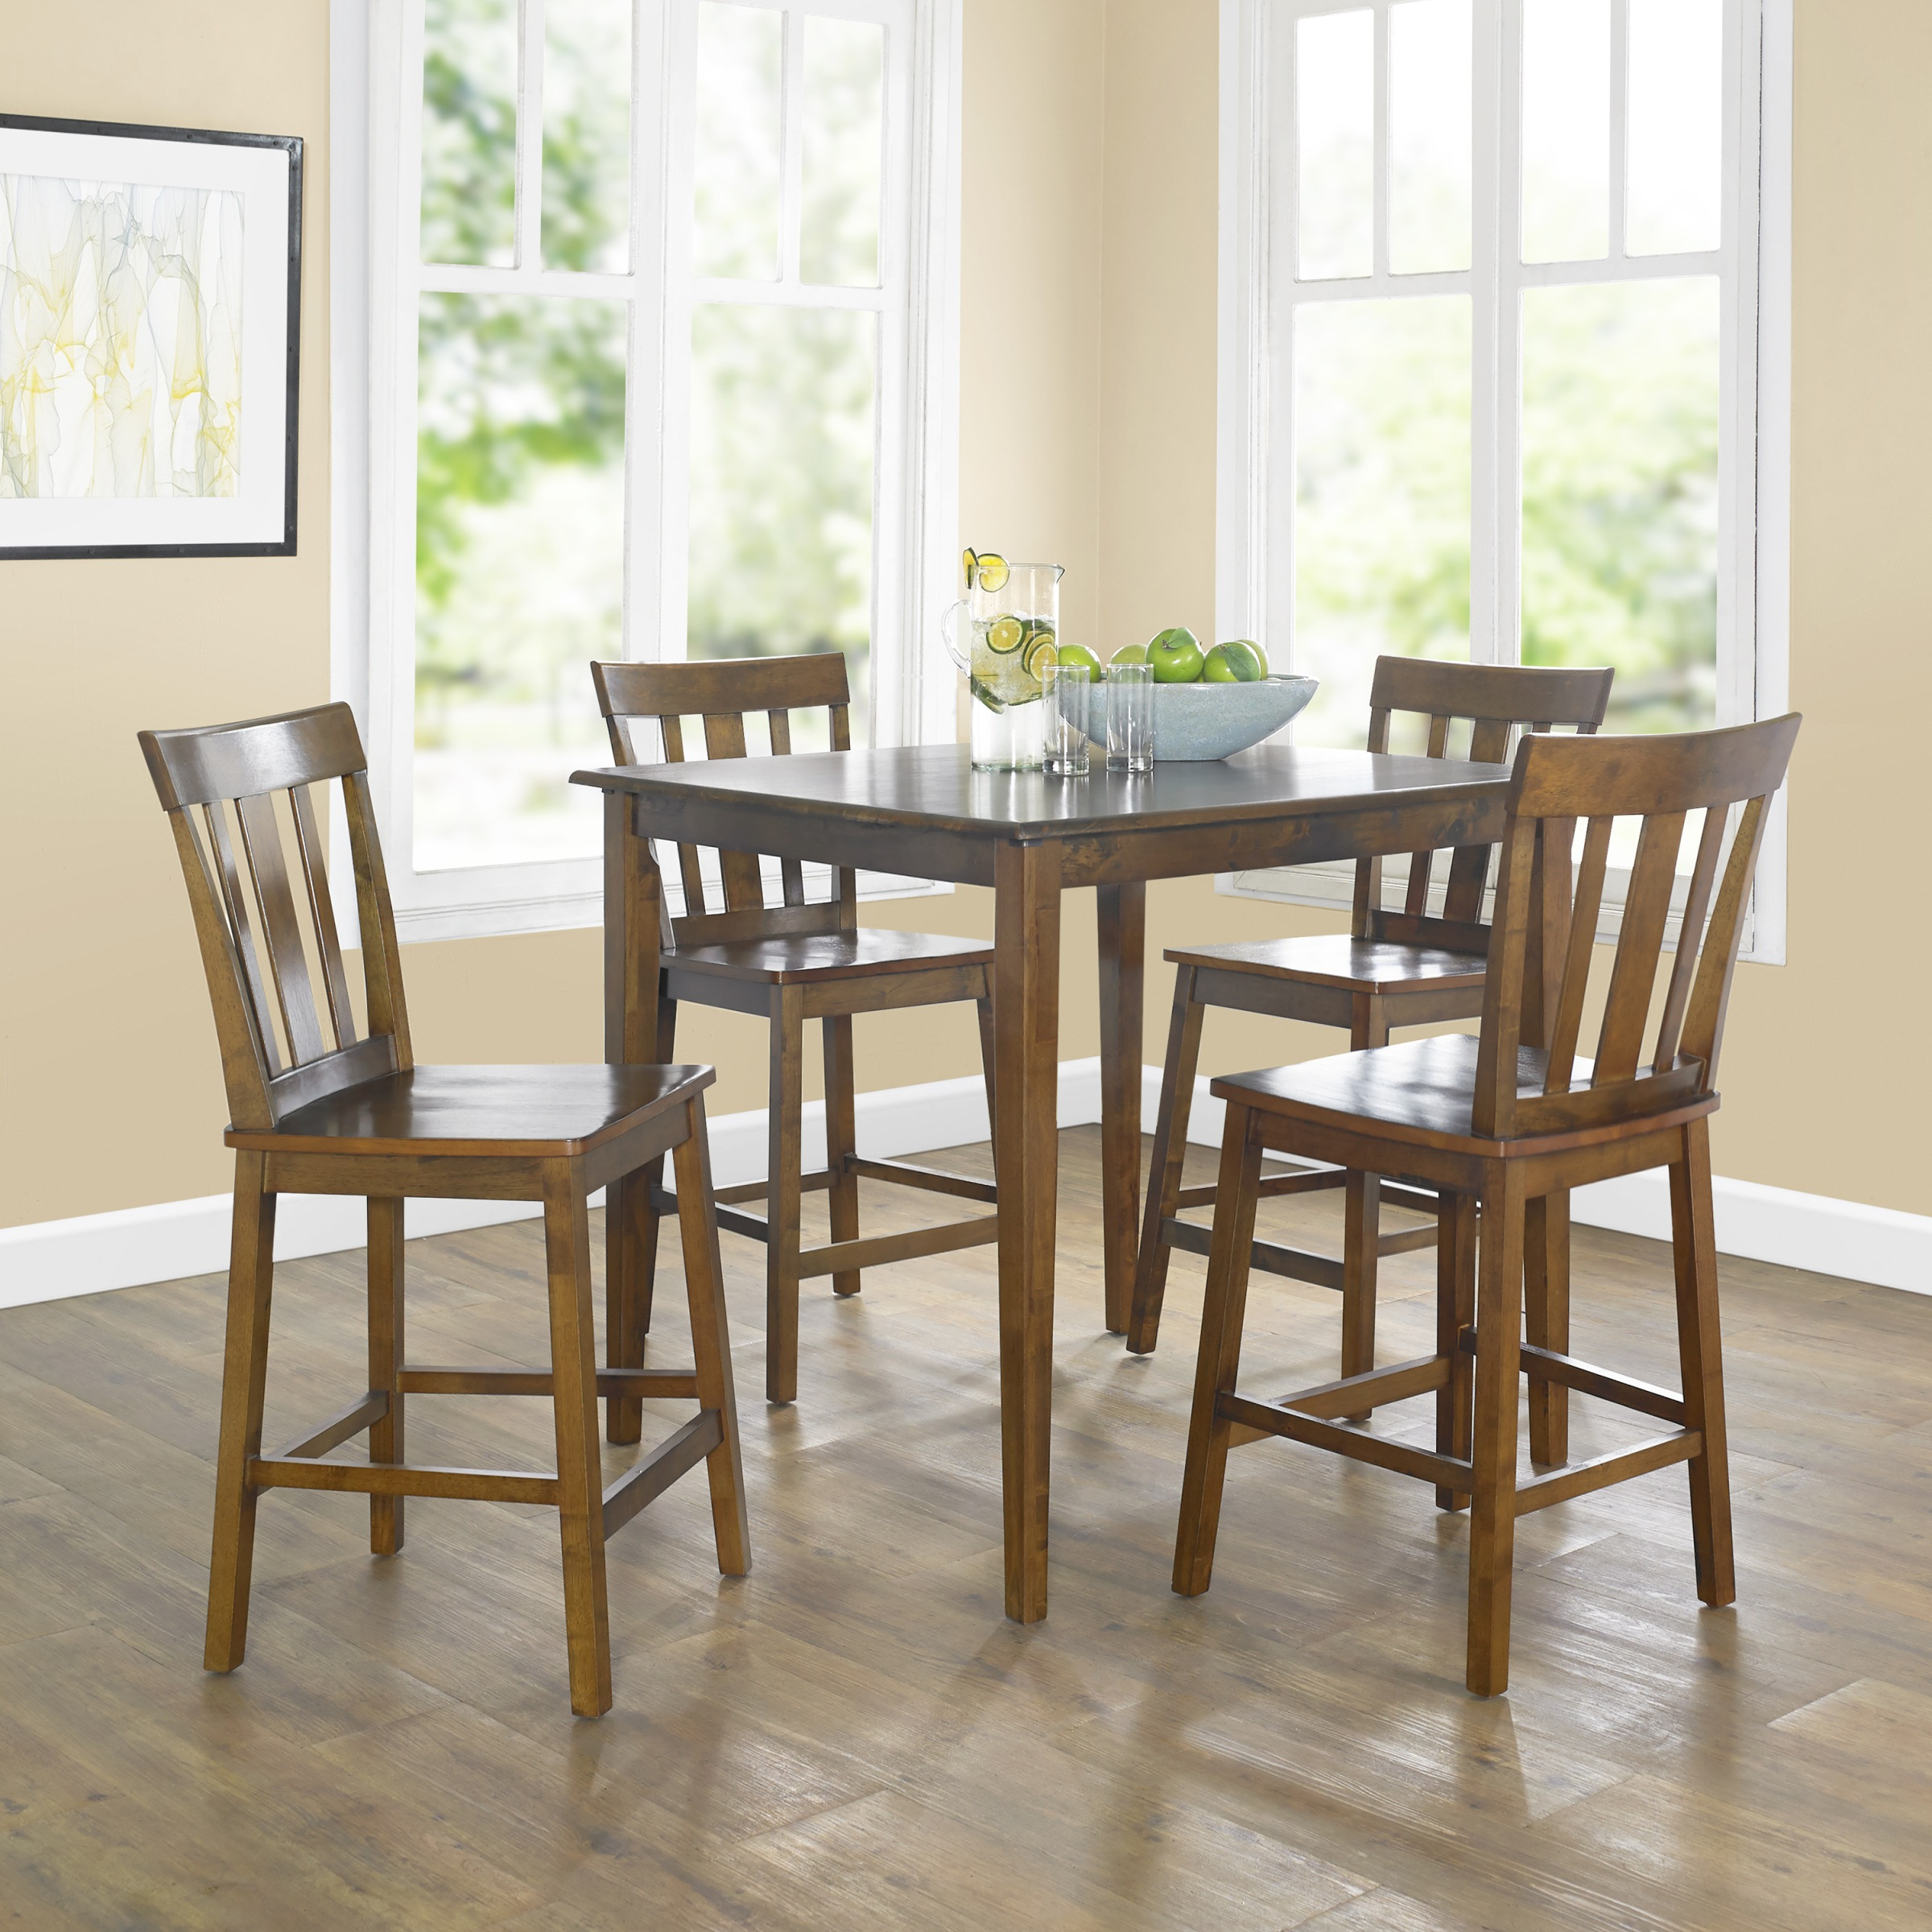 Mainstays 5 Piece Mission Counter Height Dining Set – Walmart Pertaining To Newest Goodman 5 Piece Solid Wood Dining Sets (Set Of 5) (Image 15 of 20)